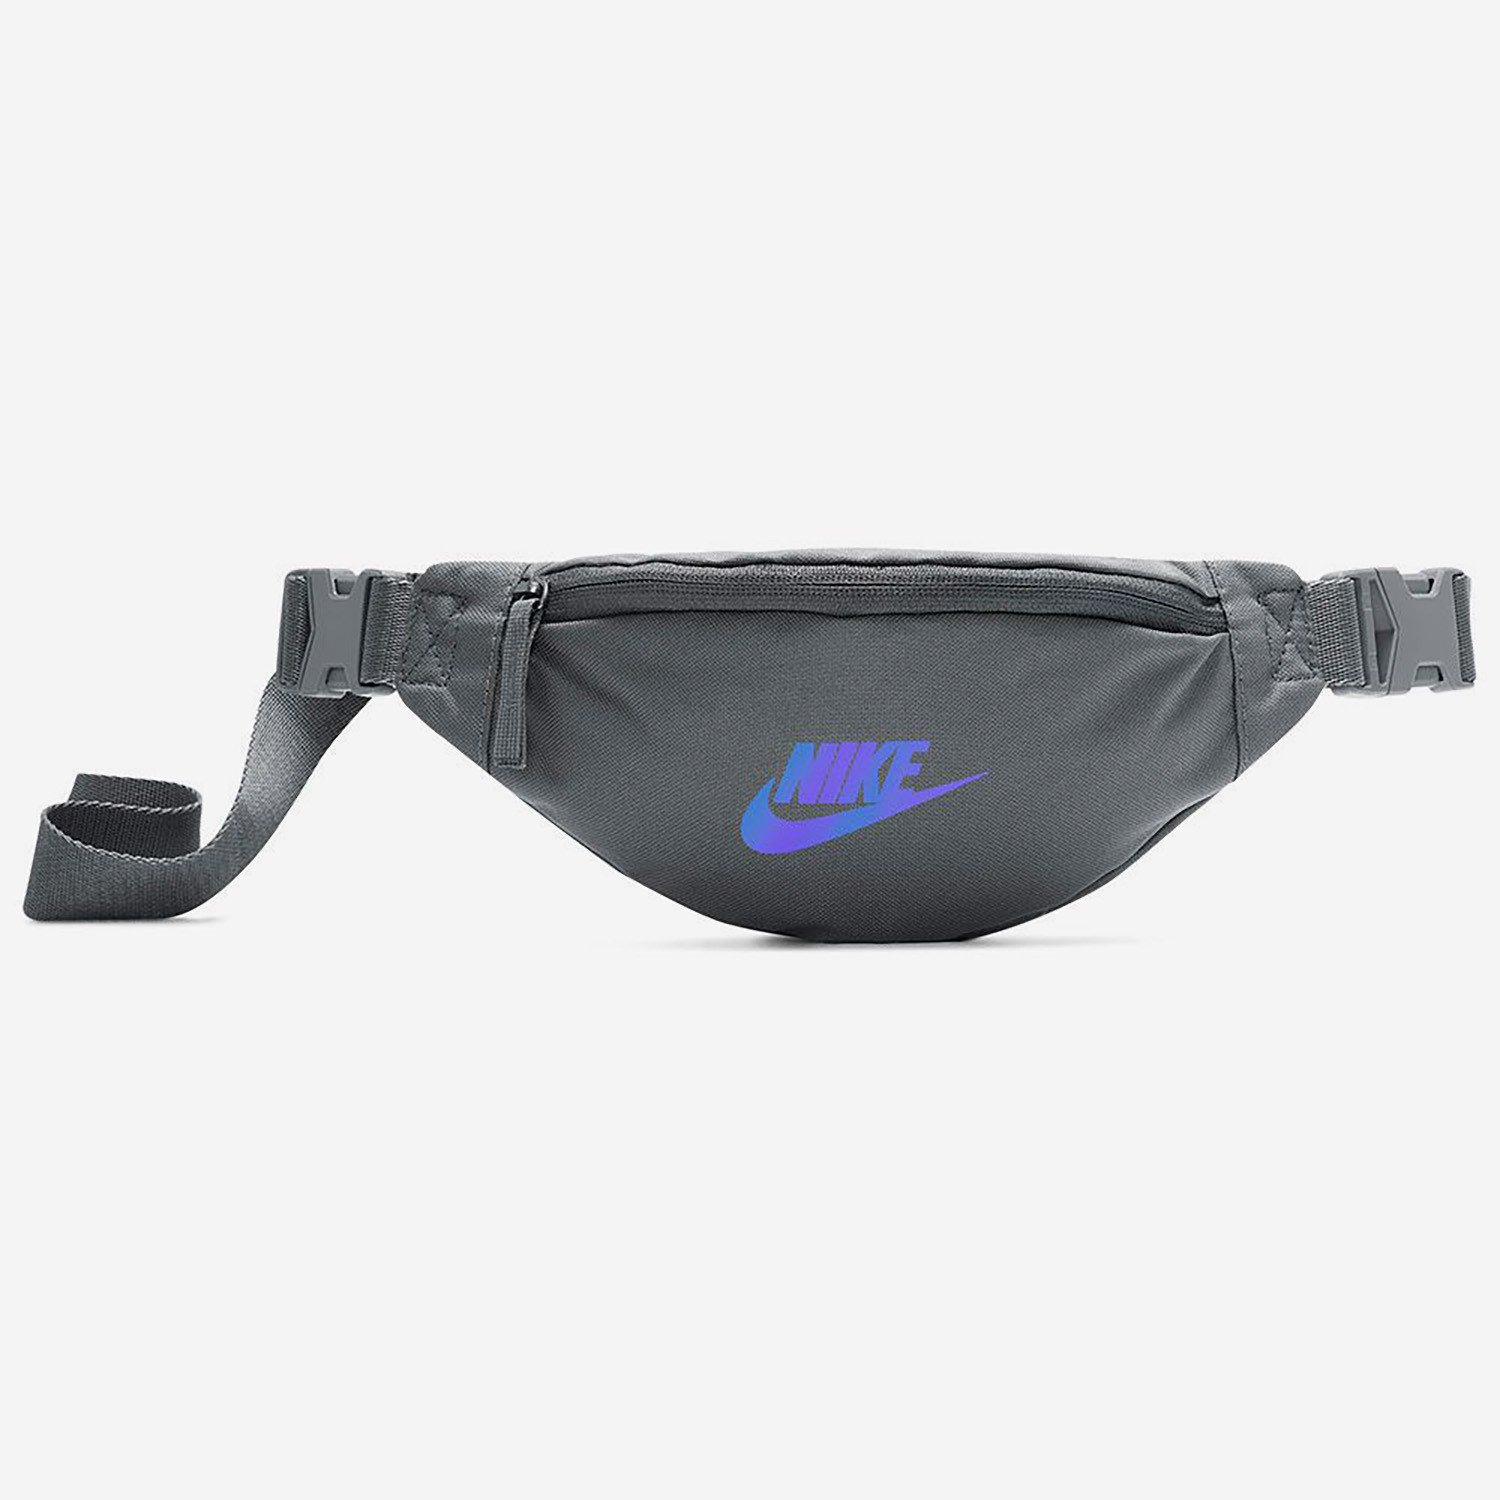 Nike Nk Heritage Hip Pack – Small (9000077450_52317)